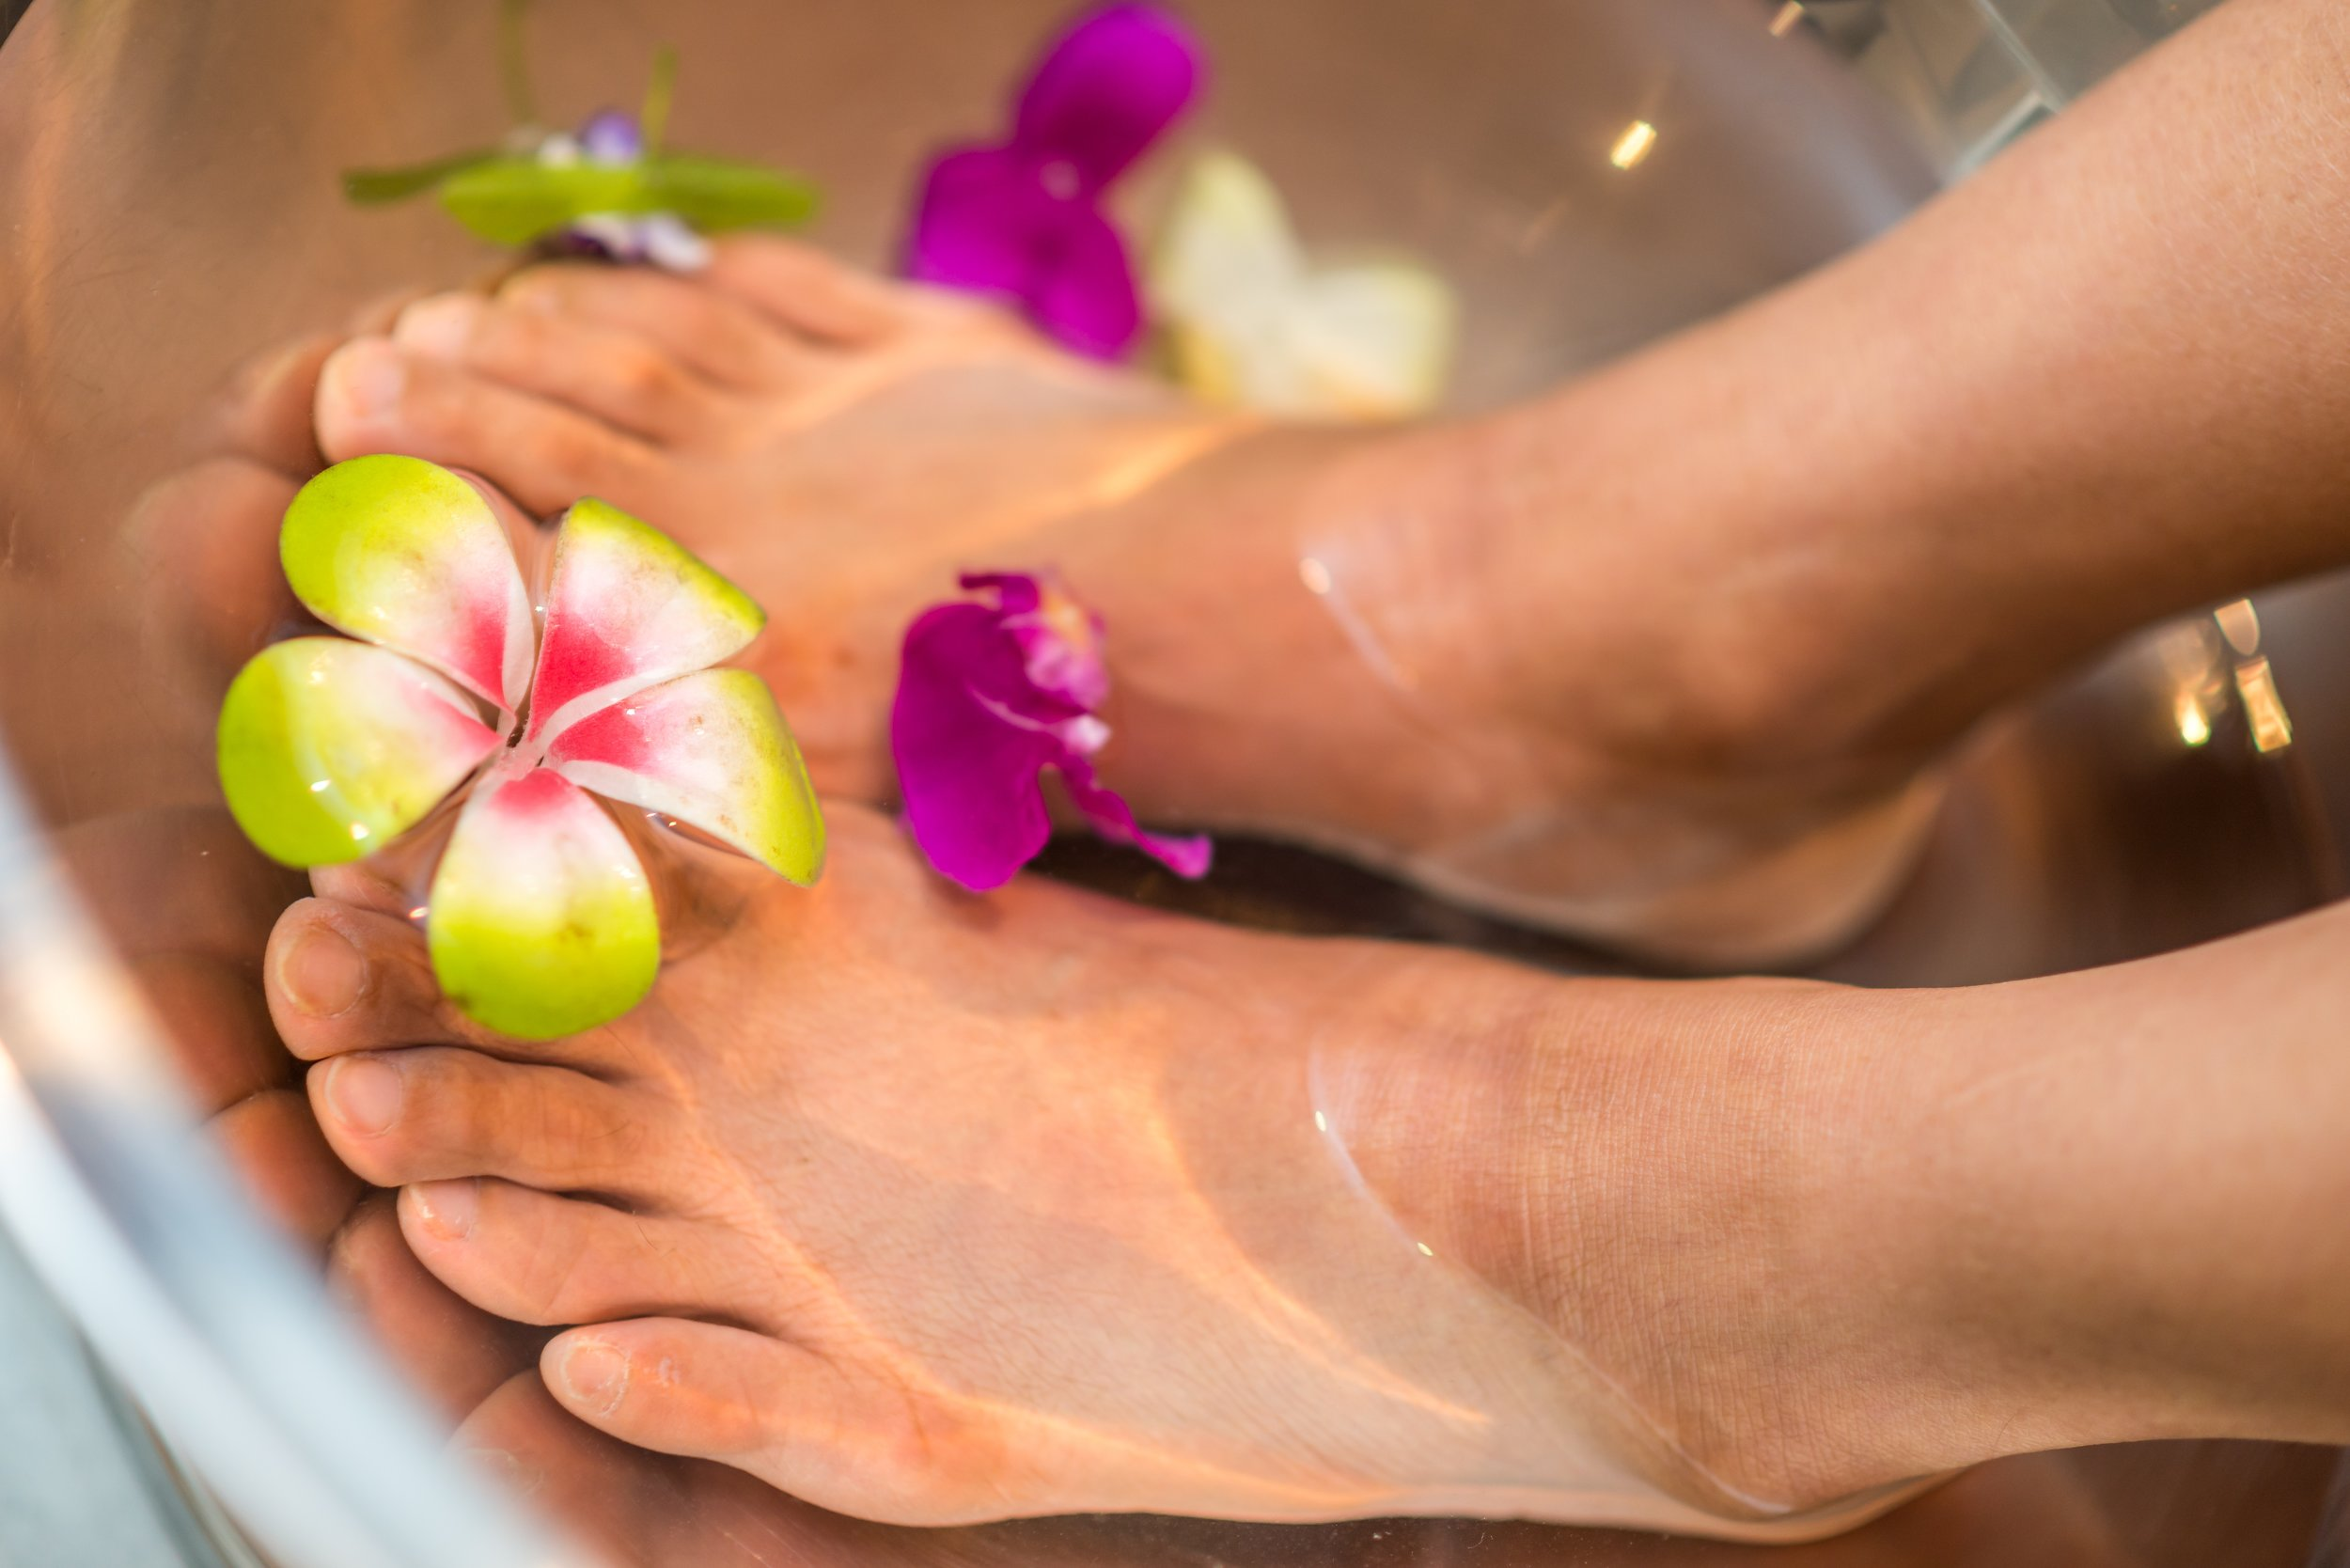 intobeauty-pedicure.jpg